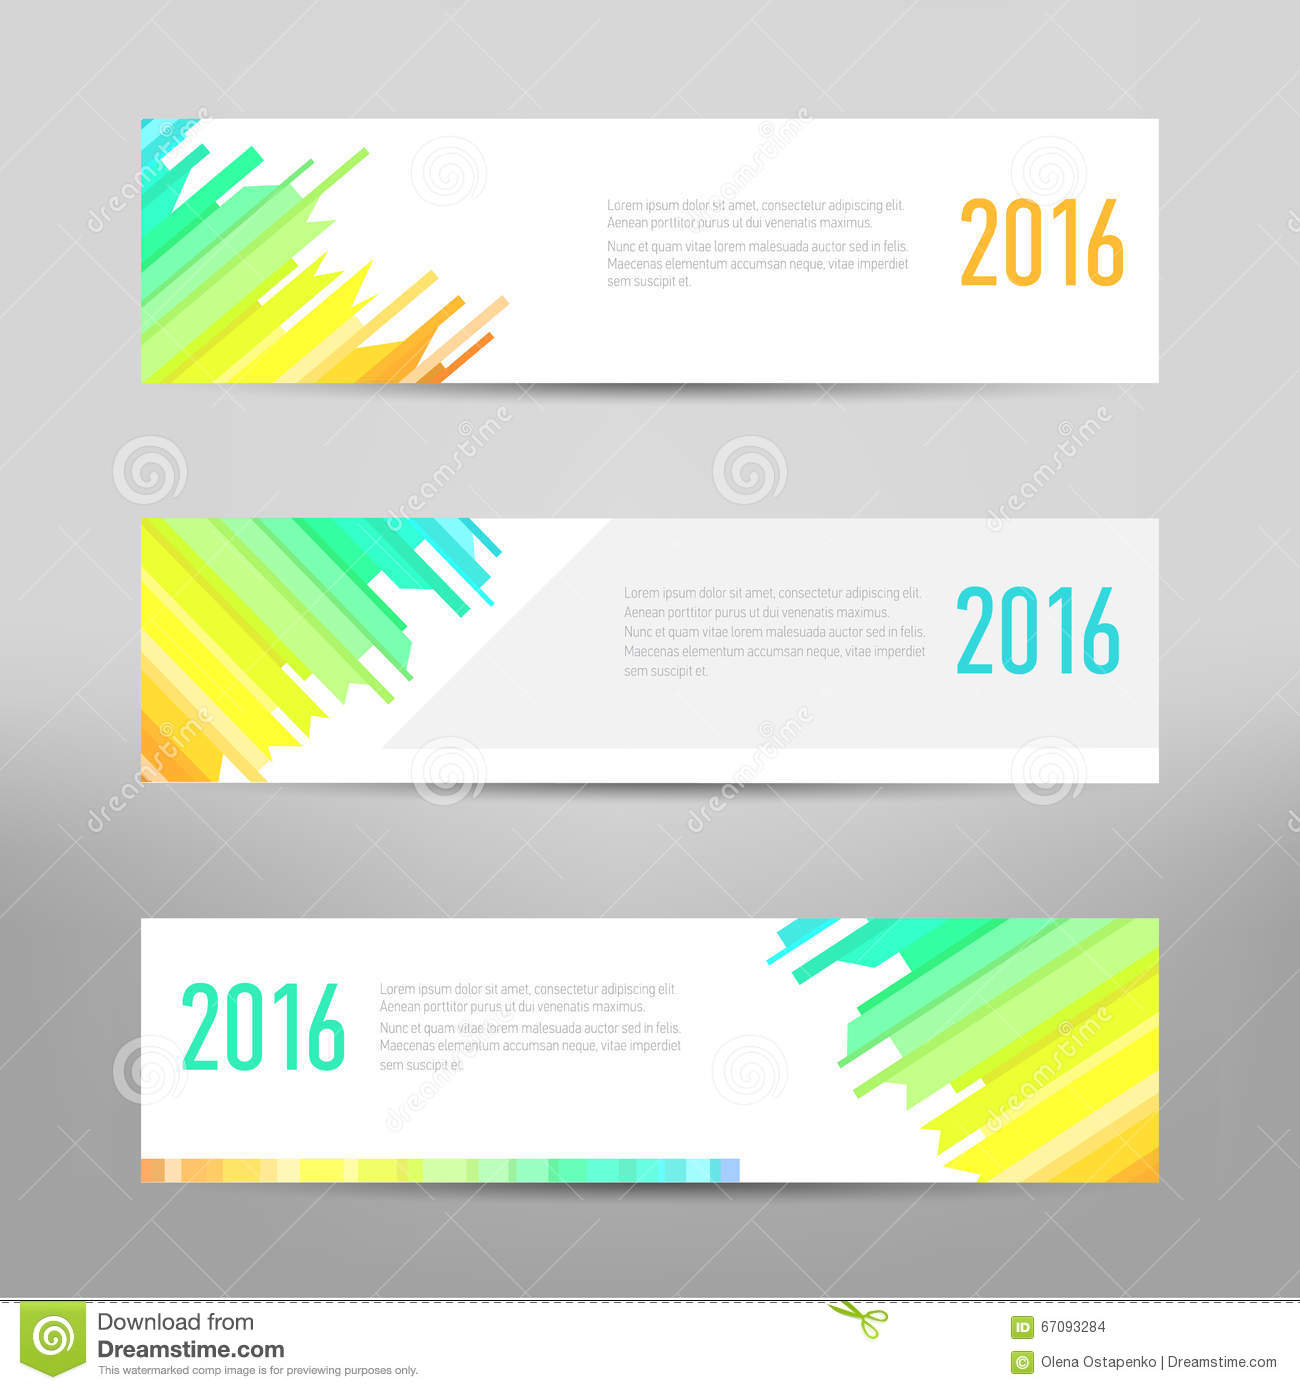 Modern banner business banner flyer design vector layout modern banner business banner flyer design vector layout template design colored abstract banners template pronofoot35fo Choice Image